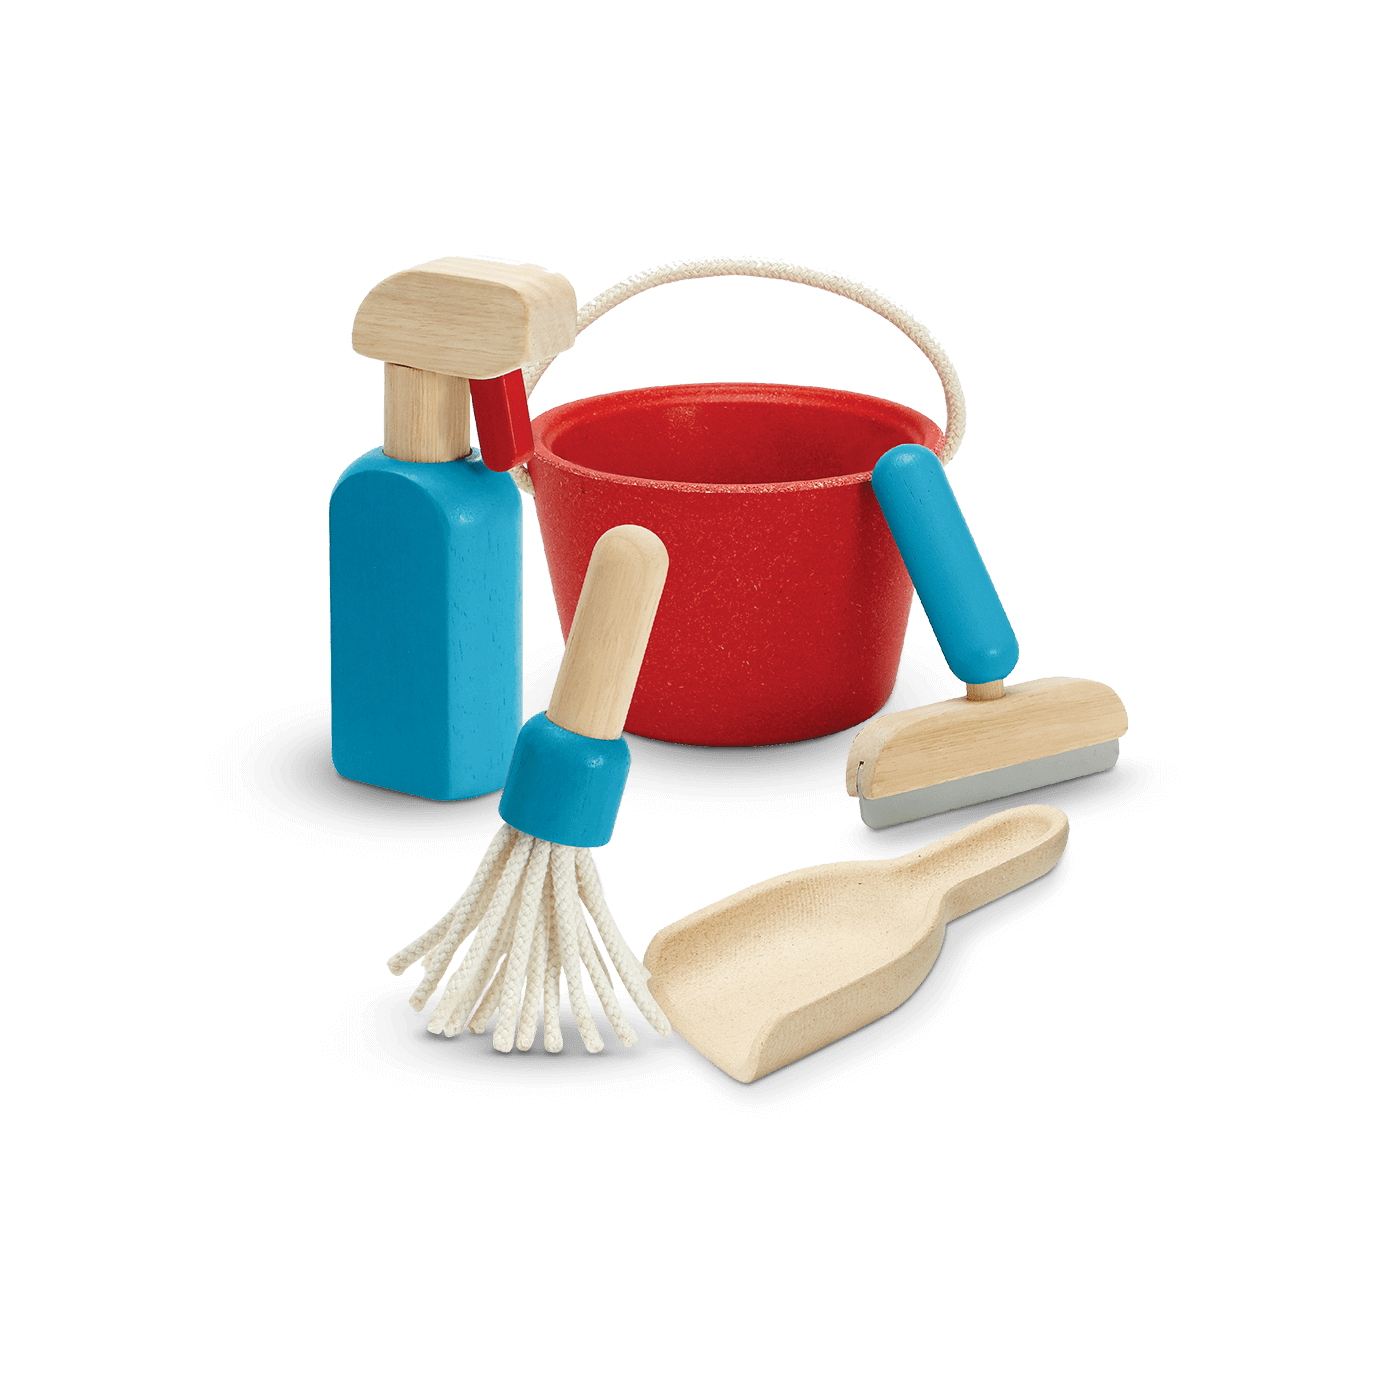 3498_PlanToys_CLEANING_SET_Pretend_Play_Imagination_Coordination_Language_and_Communications_Social_Fine_Motor_2yrs_Wooden_toys_Education_toys_Safety_Toys_Non-toxic_0.png